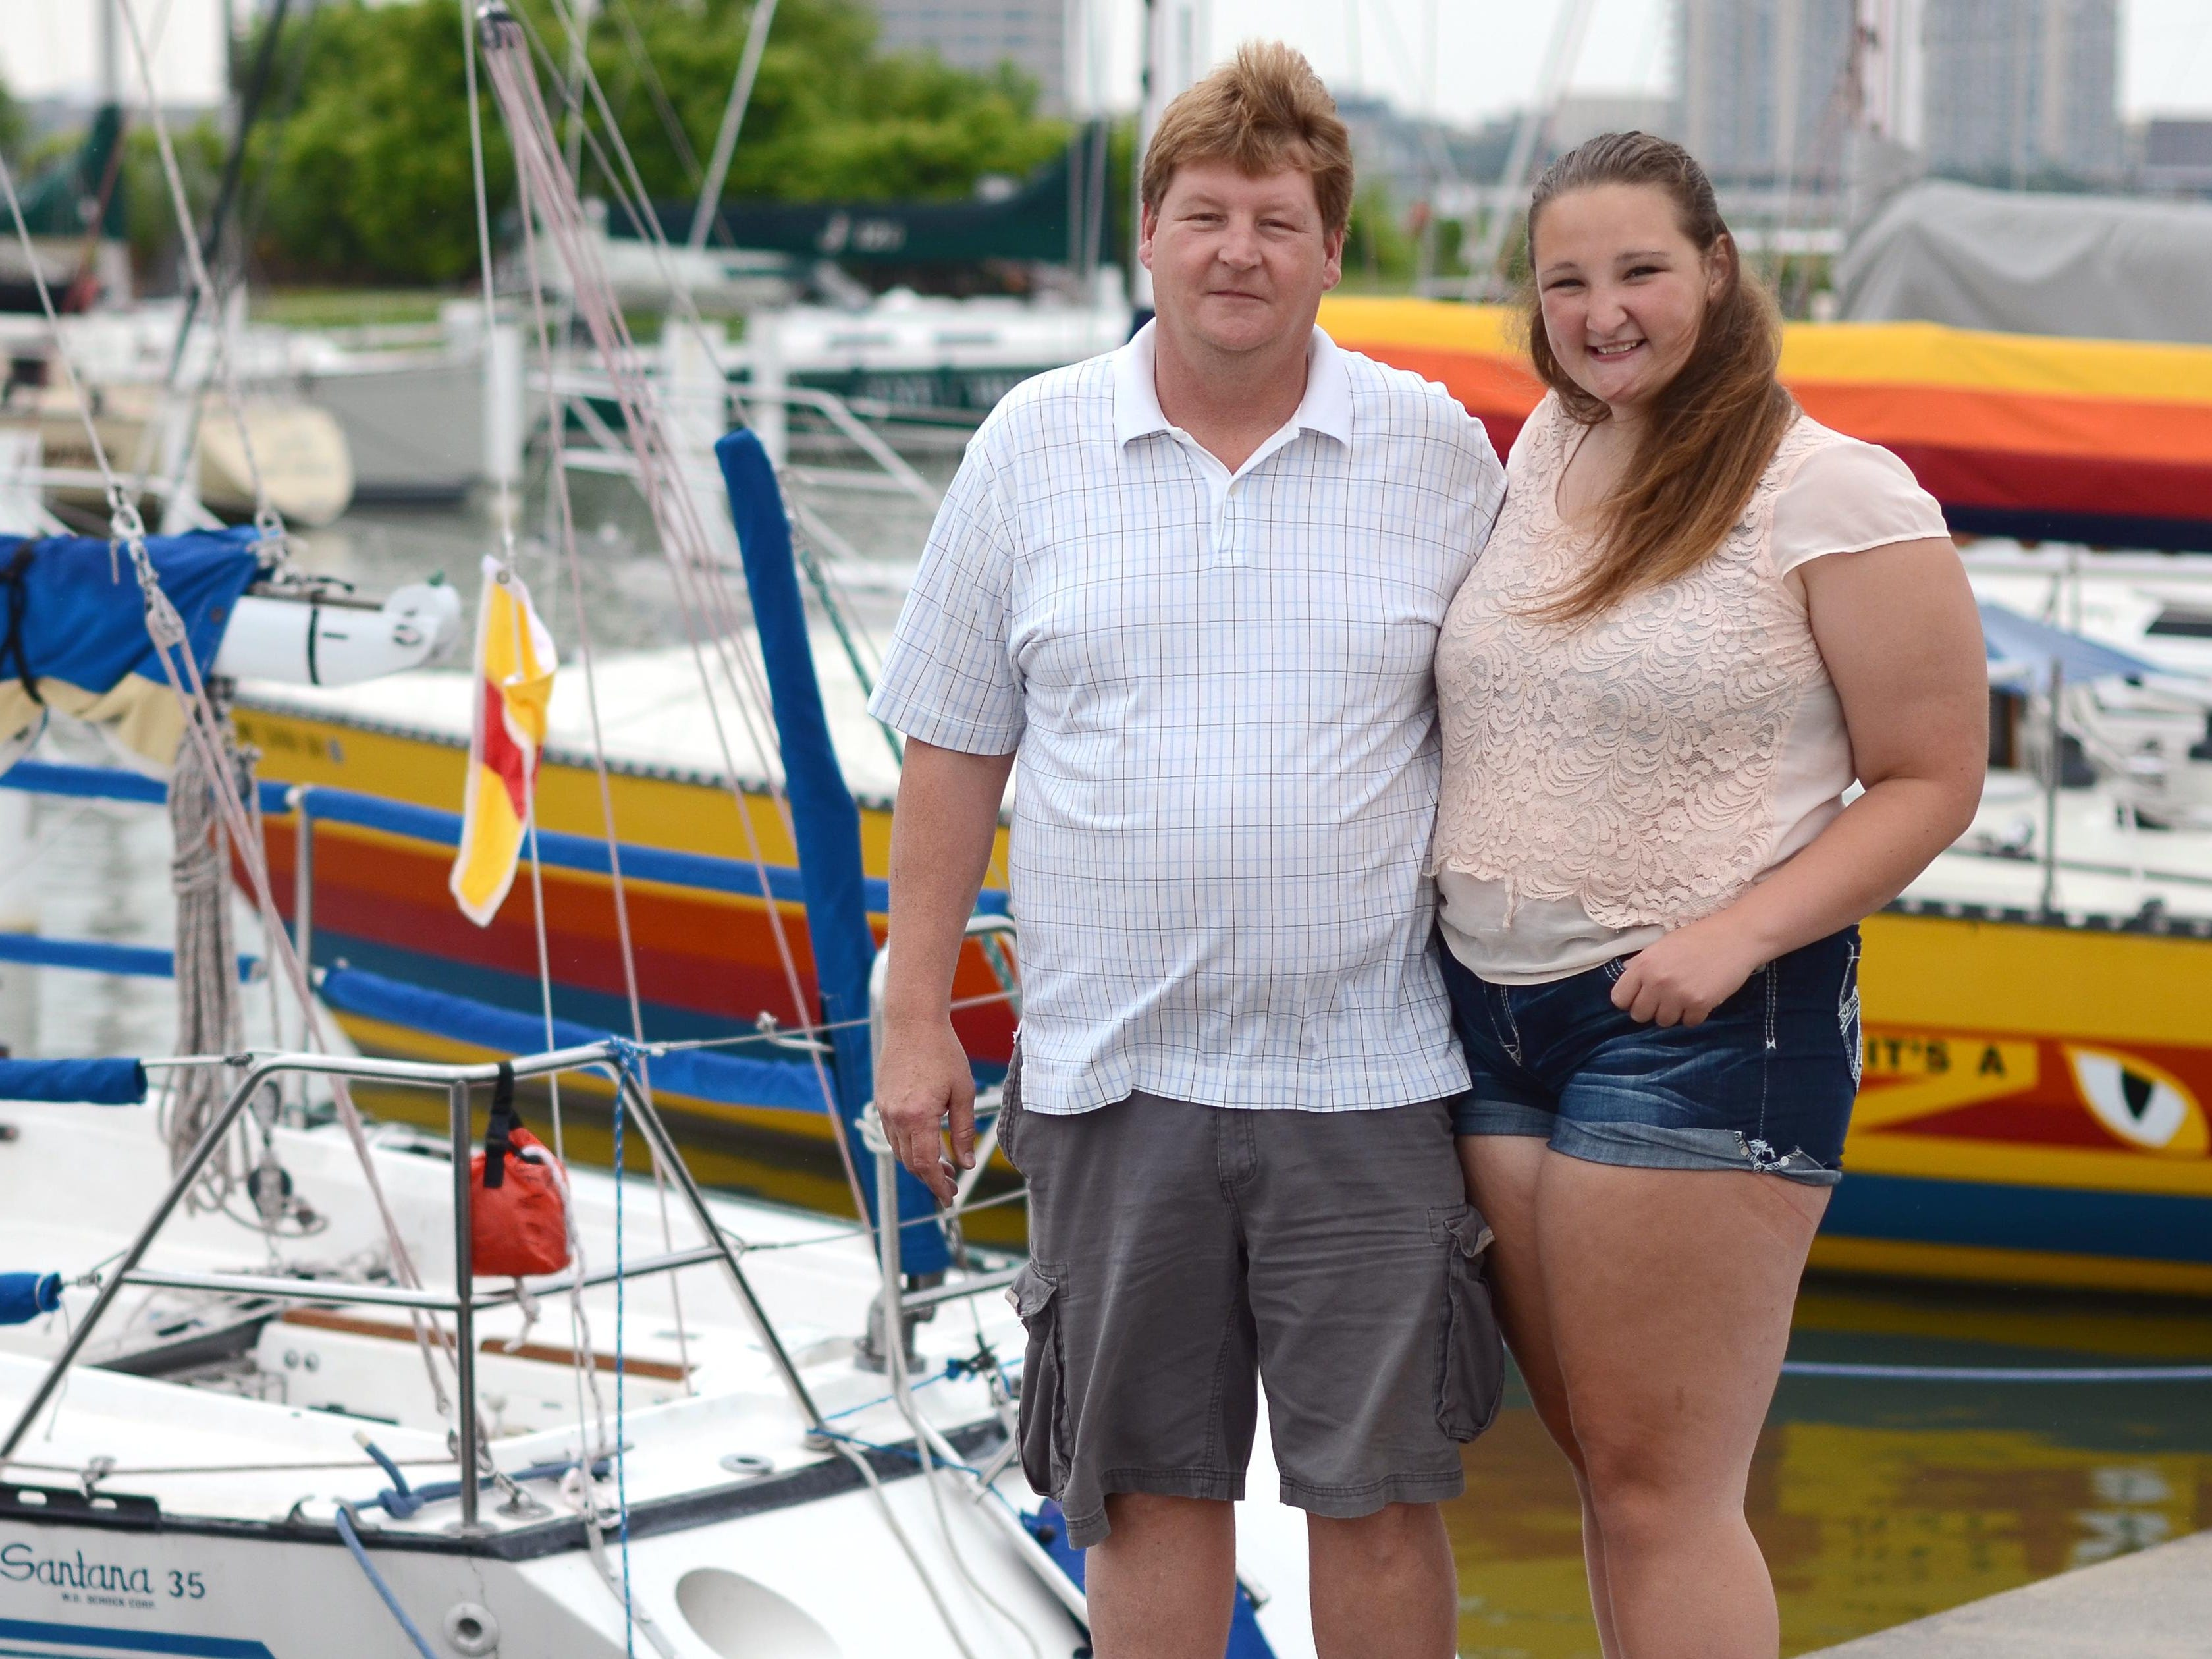 Dave Knupp and his daughter Olivia, 15, Monday, July 13, at the Port Huron Yacht Club. Olivia will be racing in her first Mackinac Race this year.